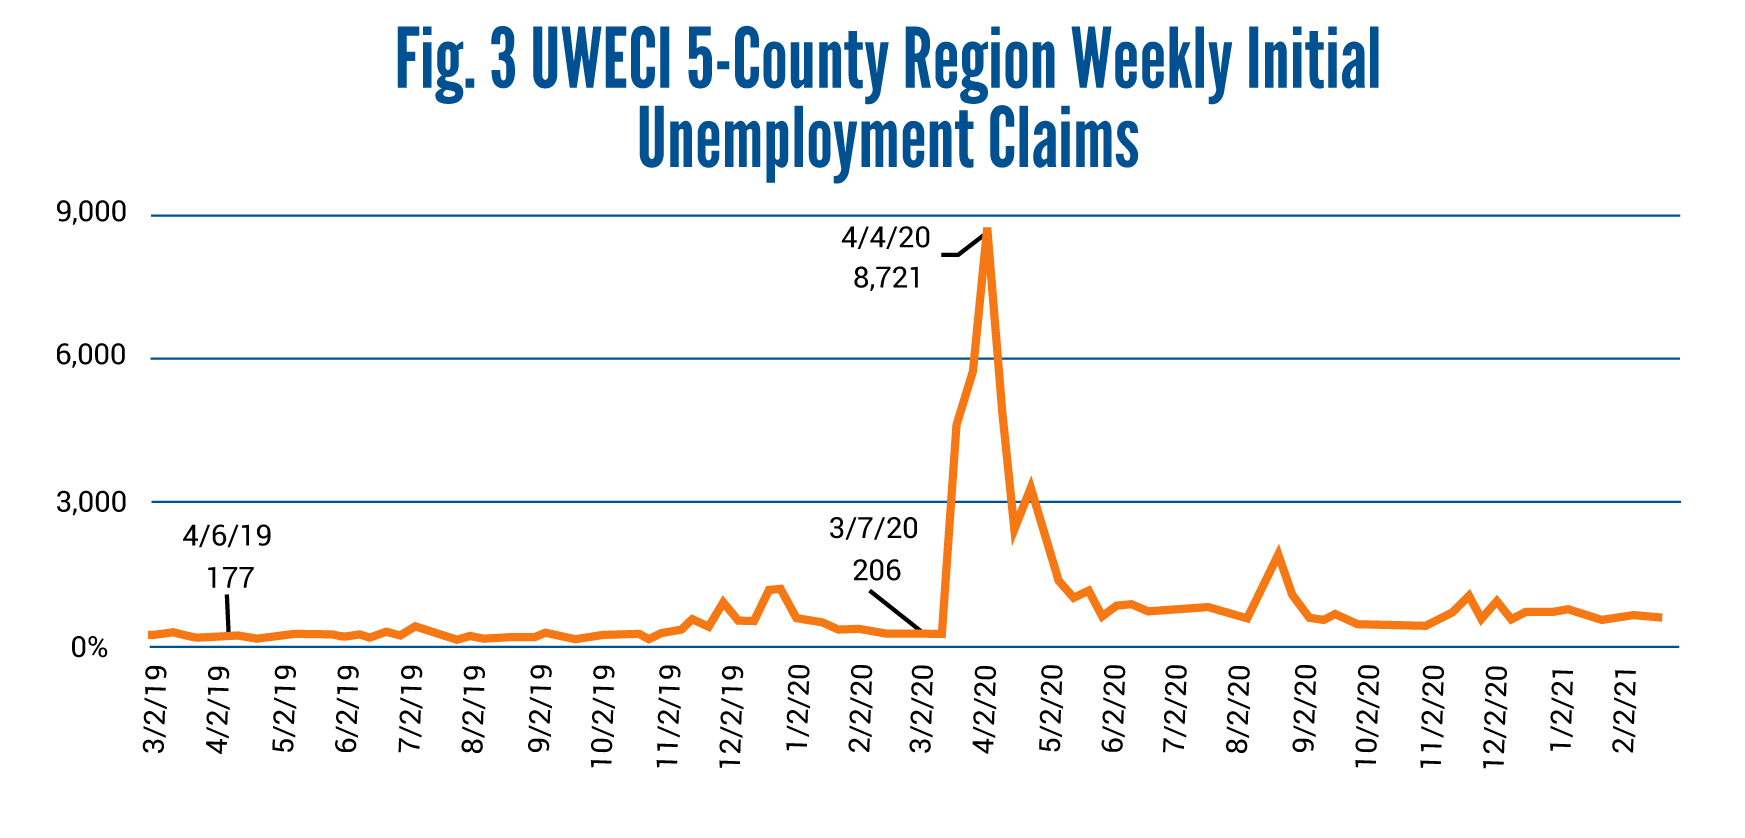 Data Dialogue Graphs-UWECI 5County Region Weekly Initial Unemployment Claims-06